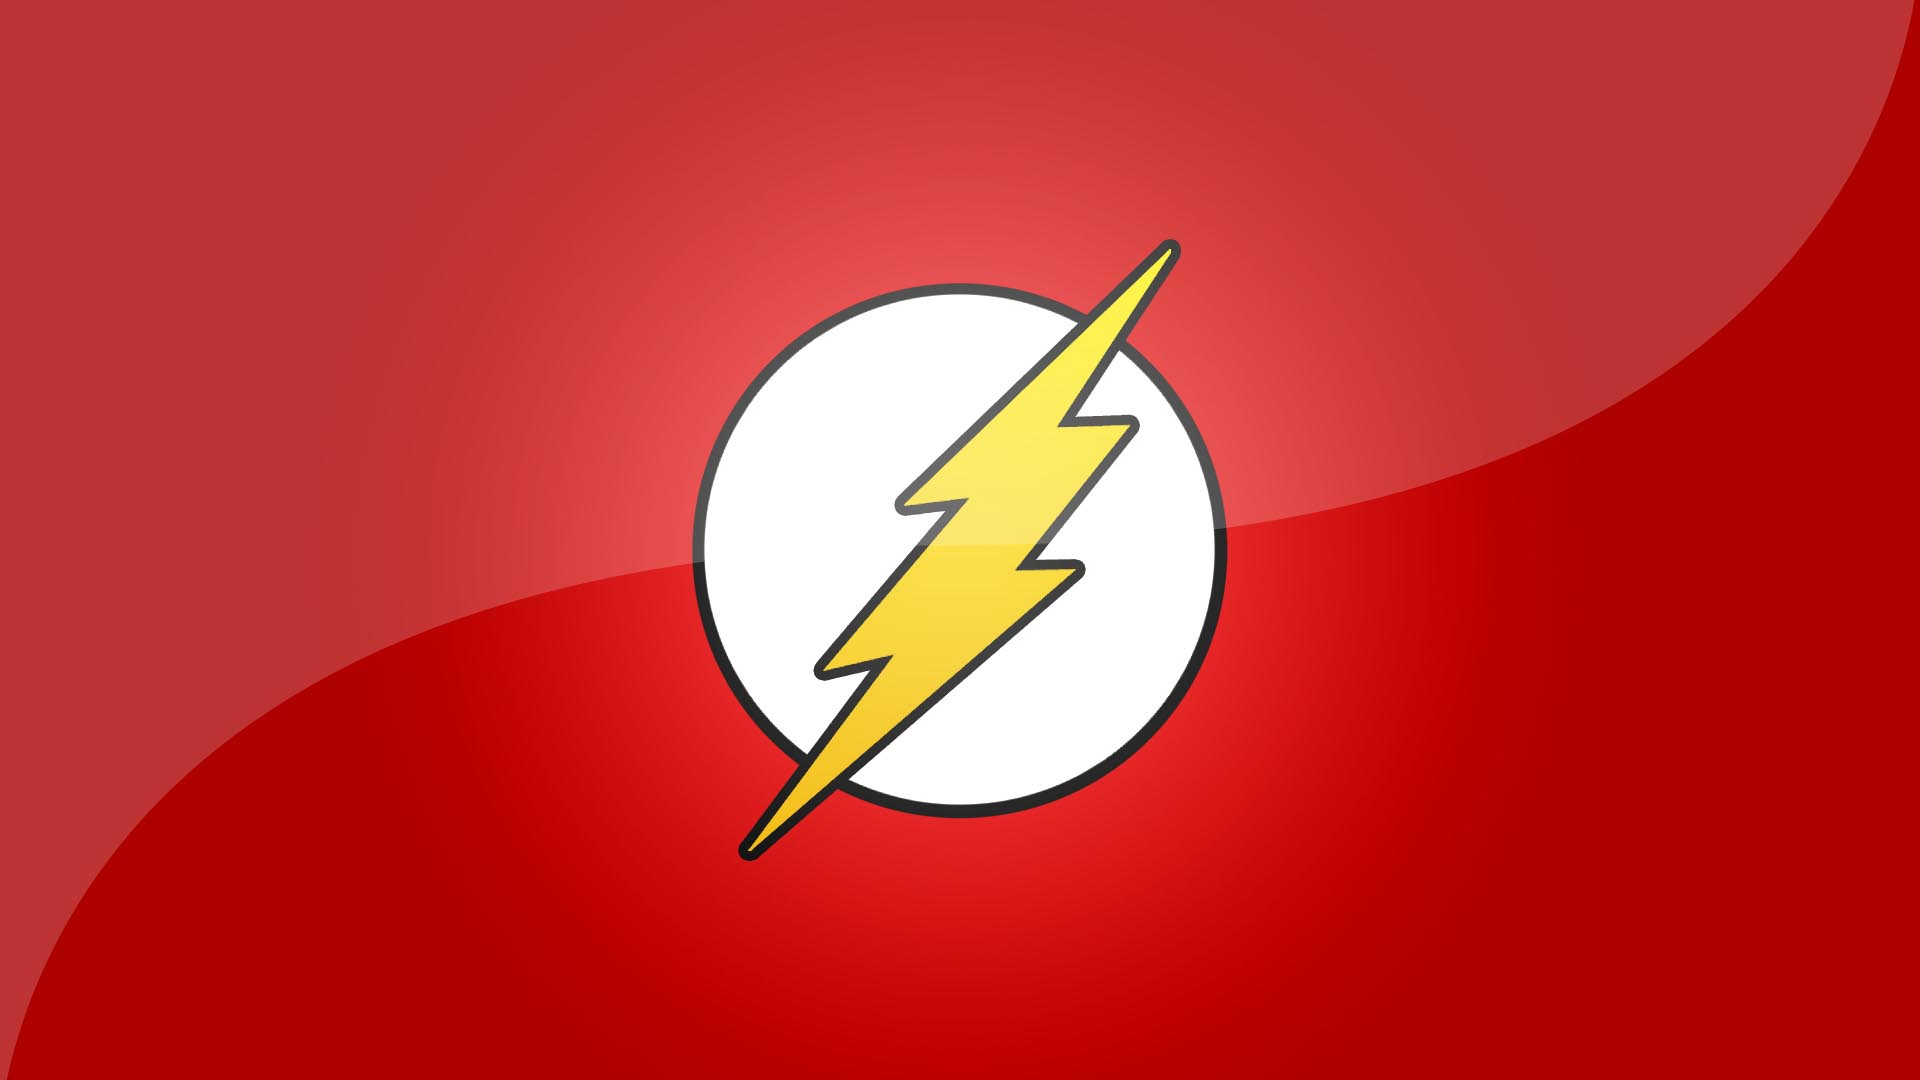 Download The Flash Wallpaper For Android 1920x1080